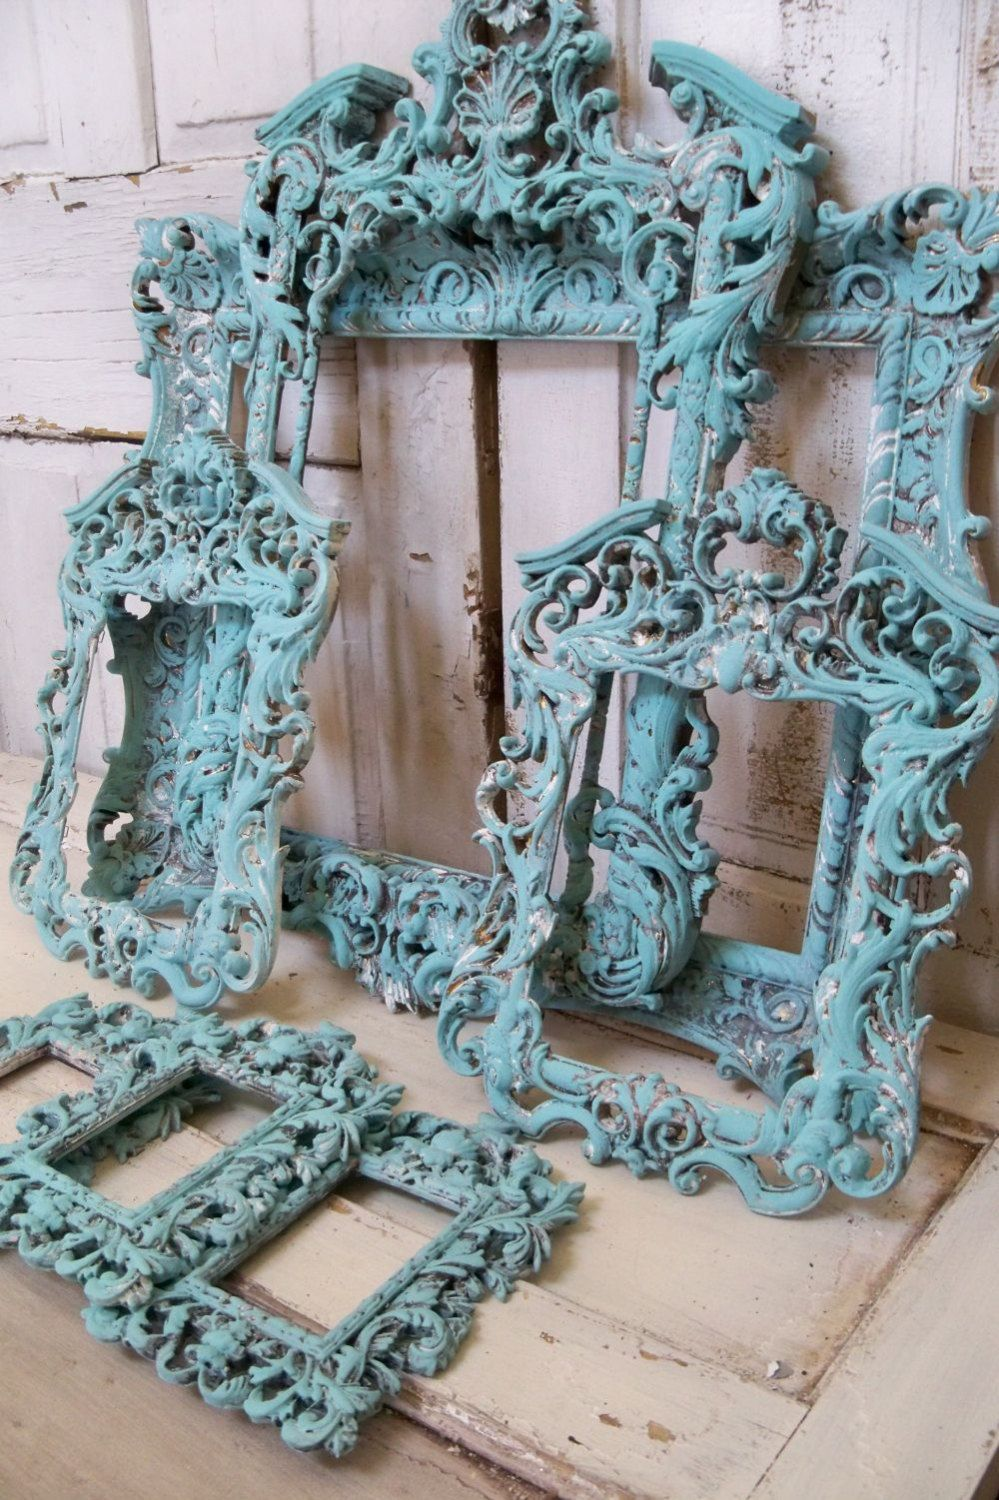 Large ornate frame grouping baroque style French chic blue aqua ...